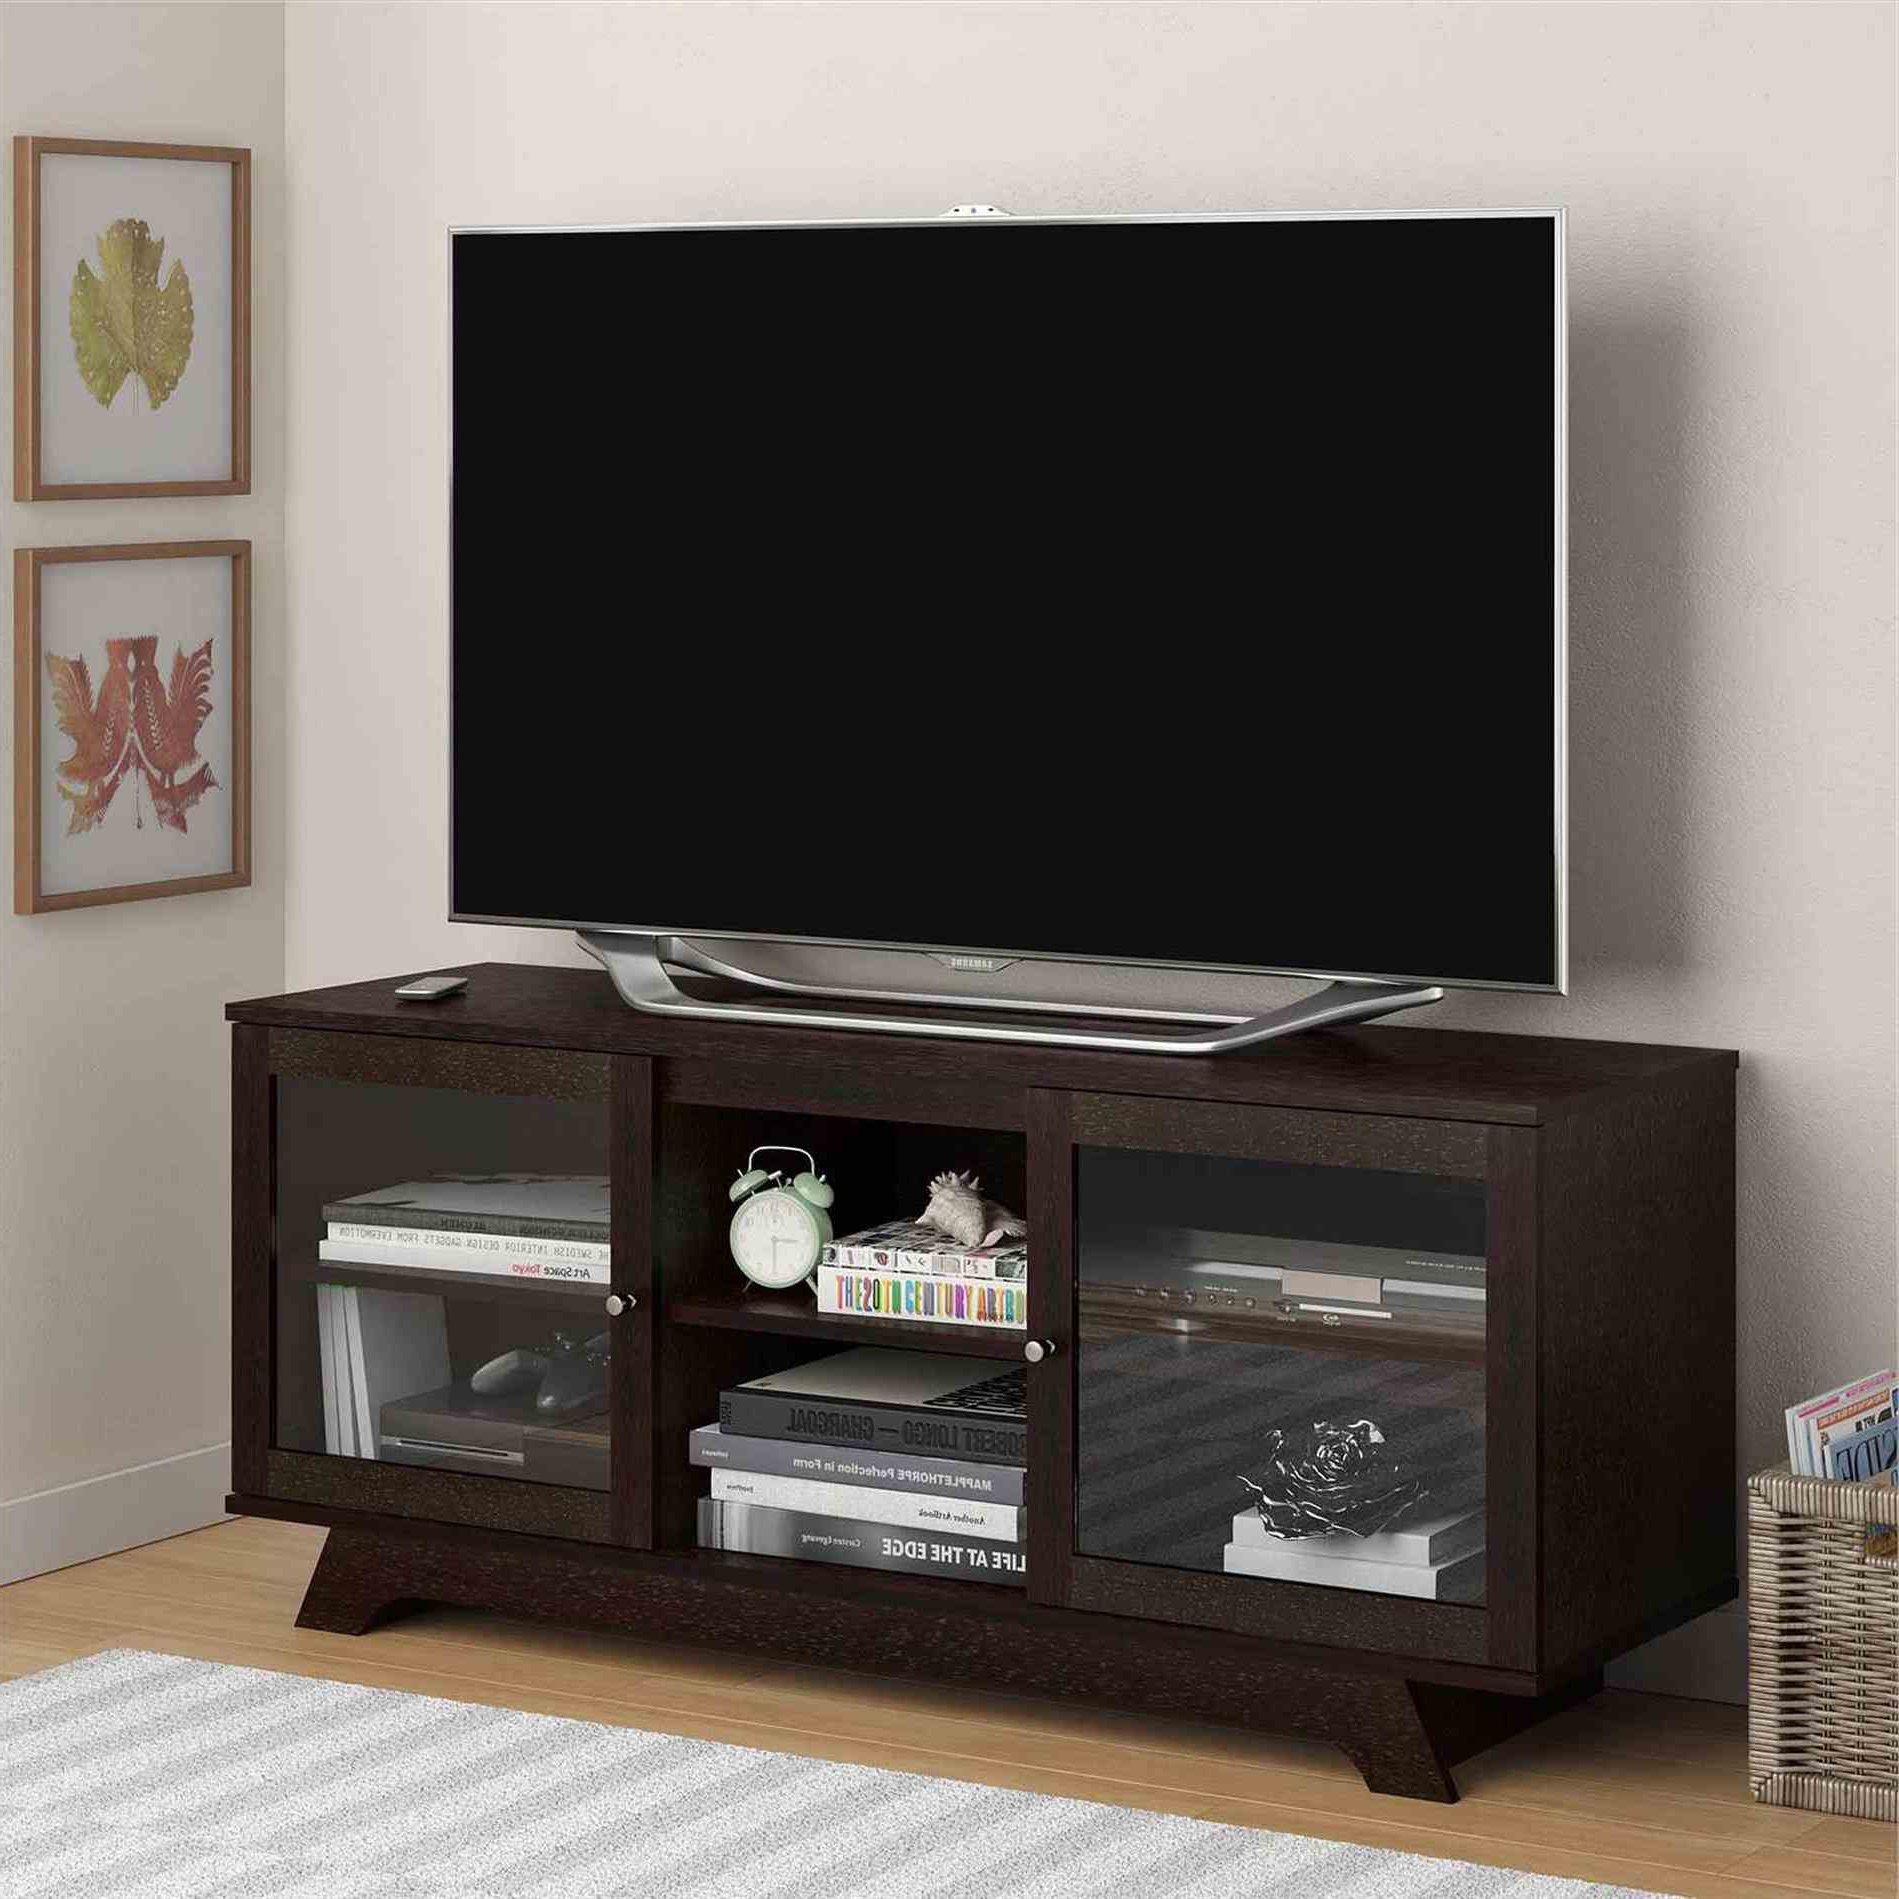 Draper 62 Inch Tv Stands Intended For Well Known Oak Entertainment Center Wall Units Rc Willey Sale Delivery Draper (View 4 of 20)